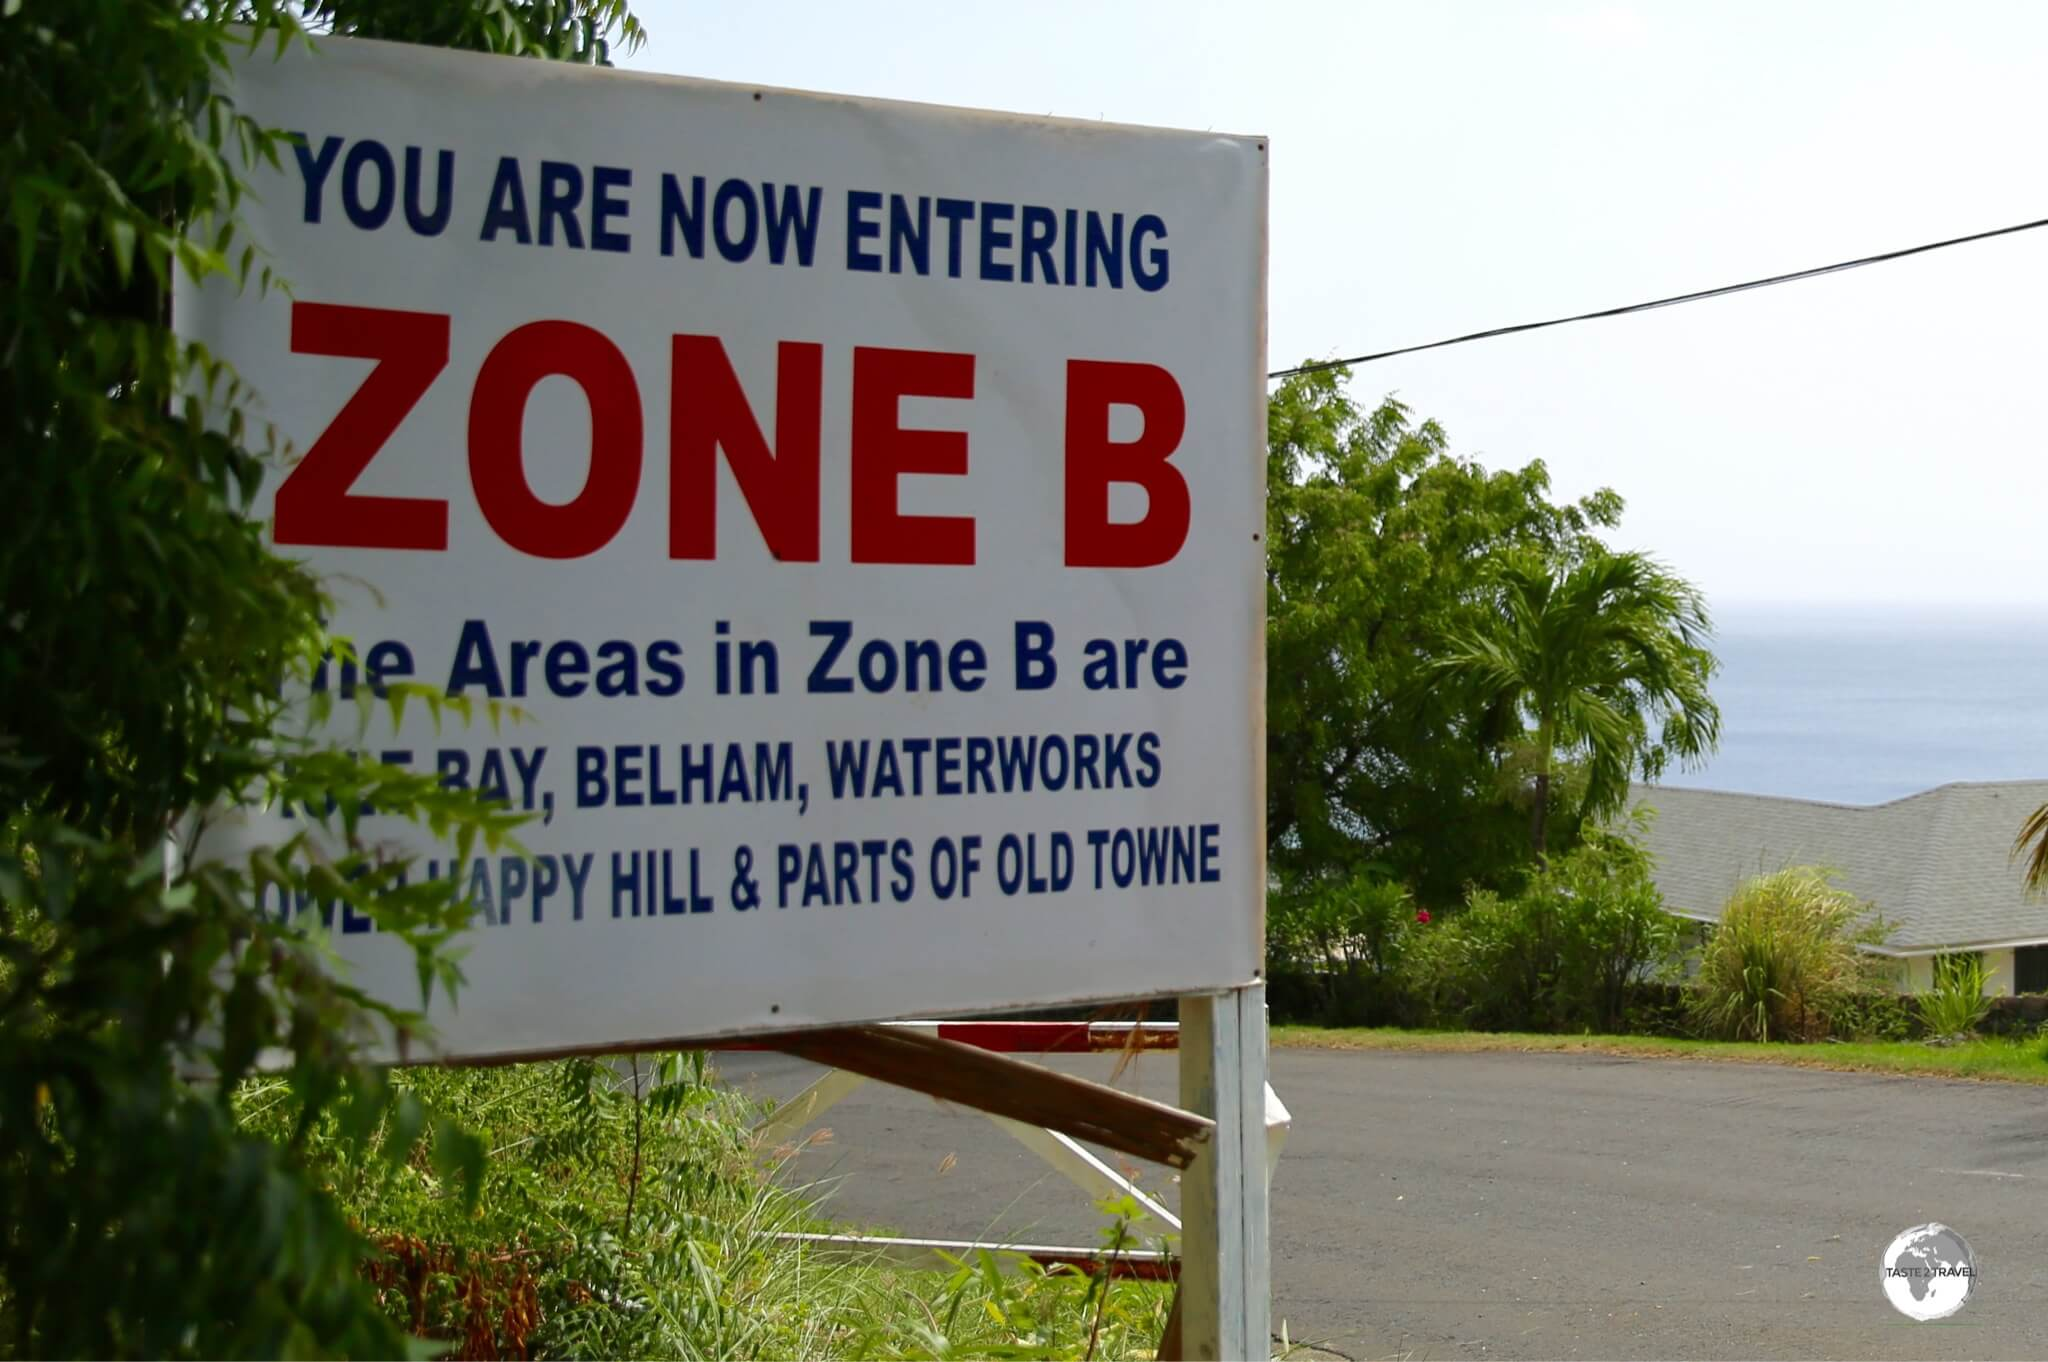 Roadside signs advise when you are entering a particular exclusion zone.